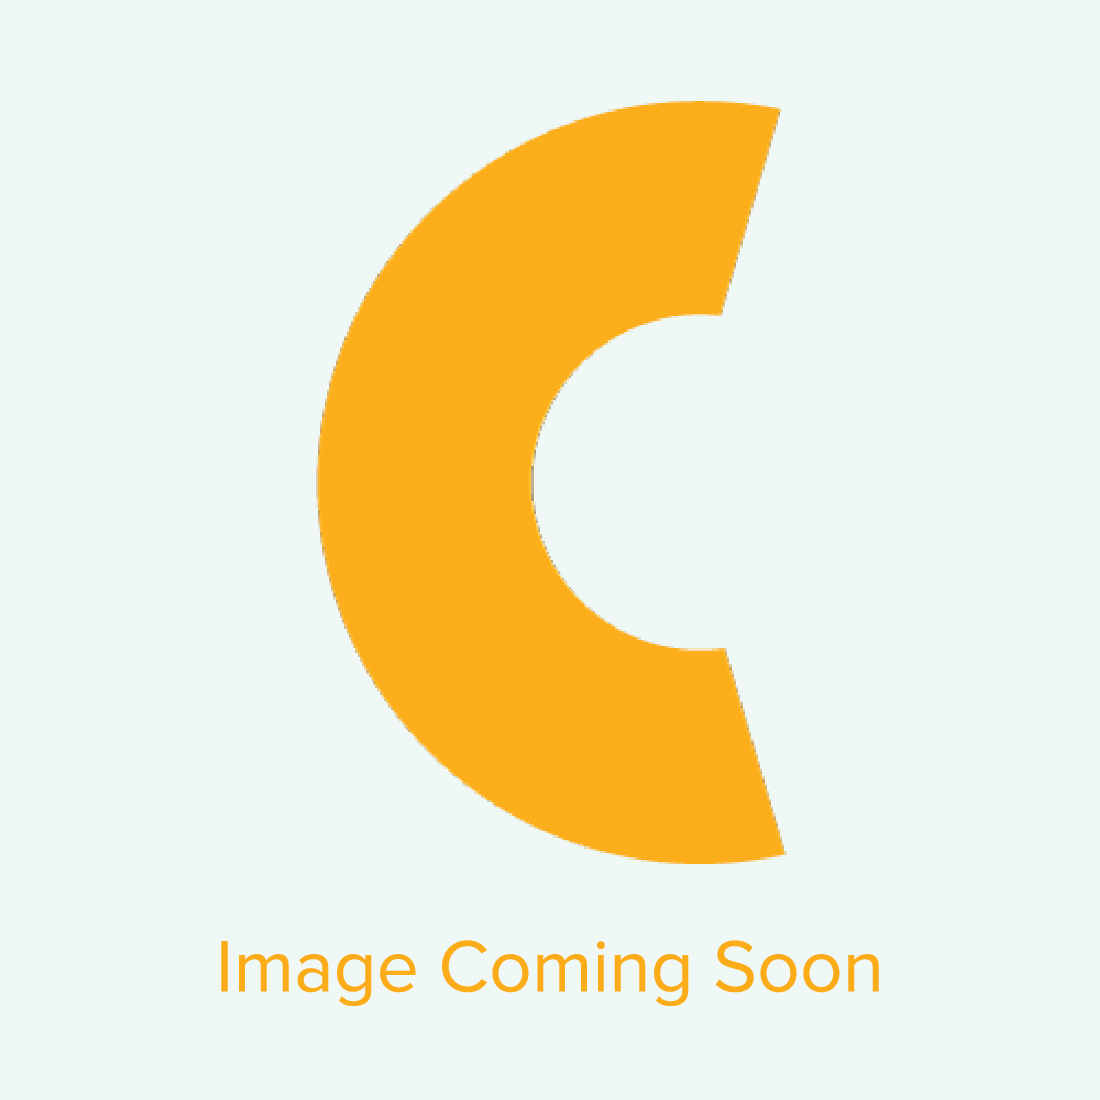 X-Rite i1Publish Pro 2 Spectrophotometer Color Management Bundle